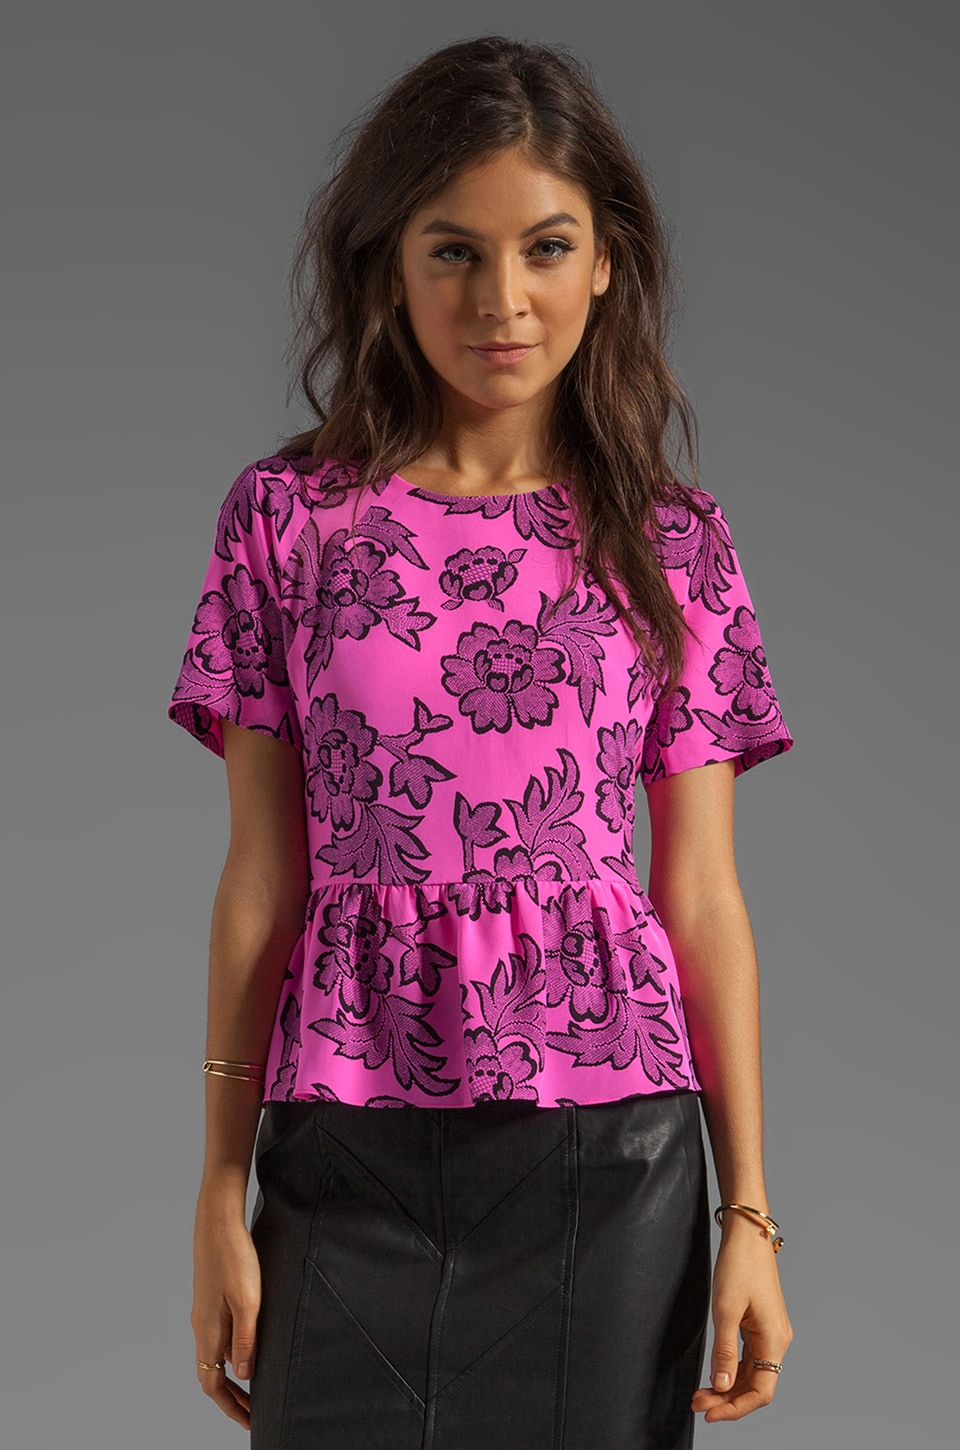 Dolce Vita Moray Vivaldi Top in Pink/Black